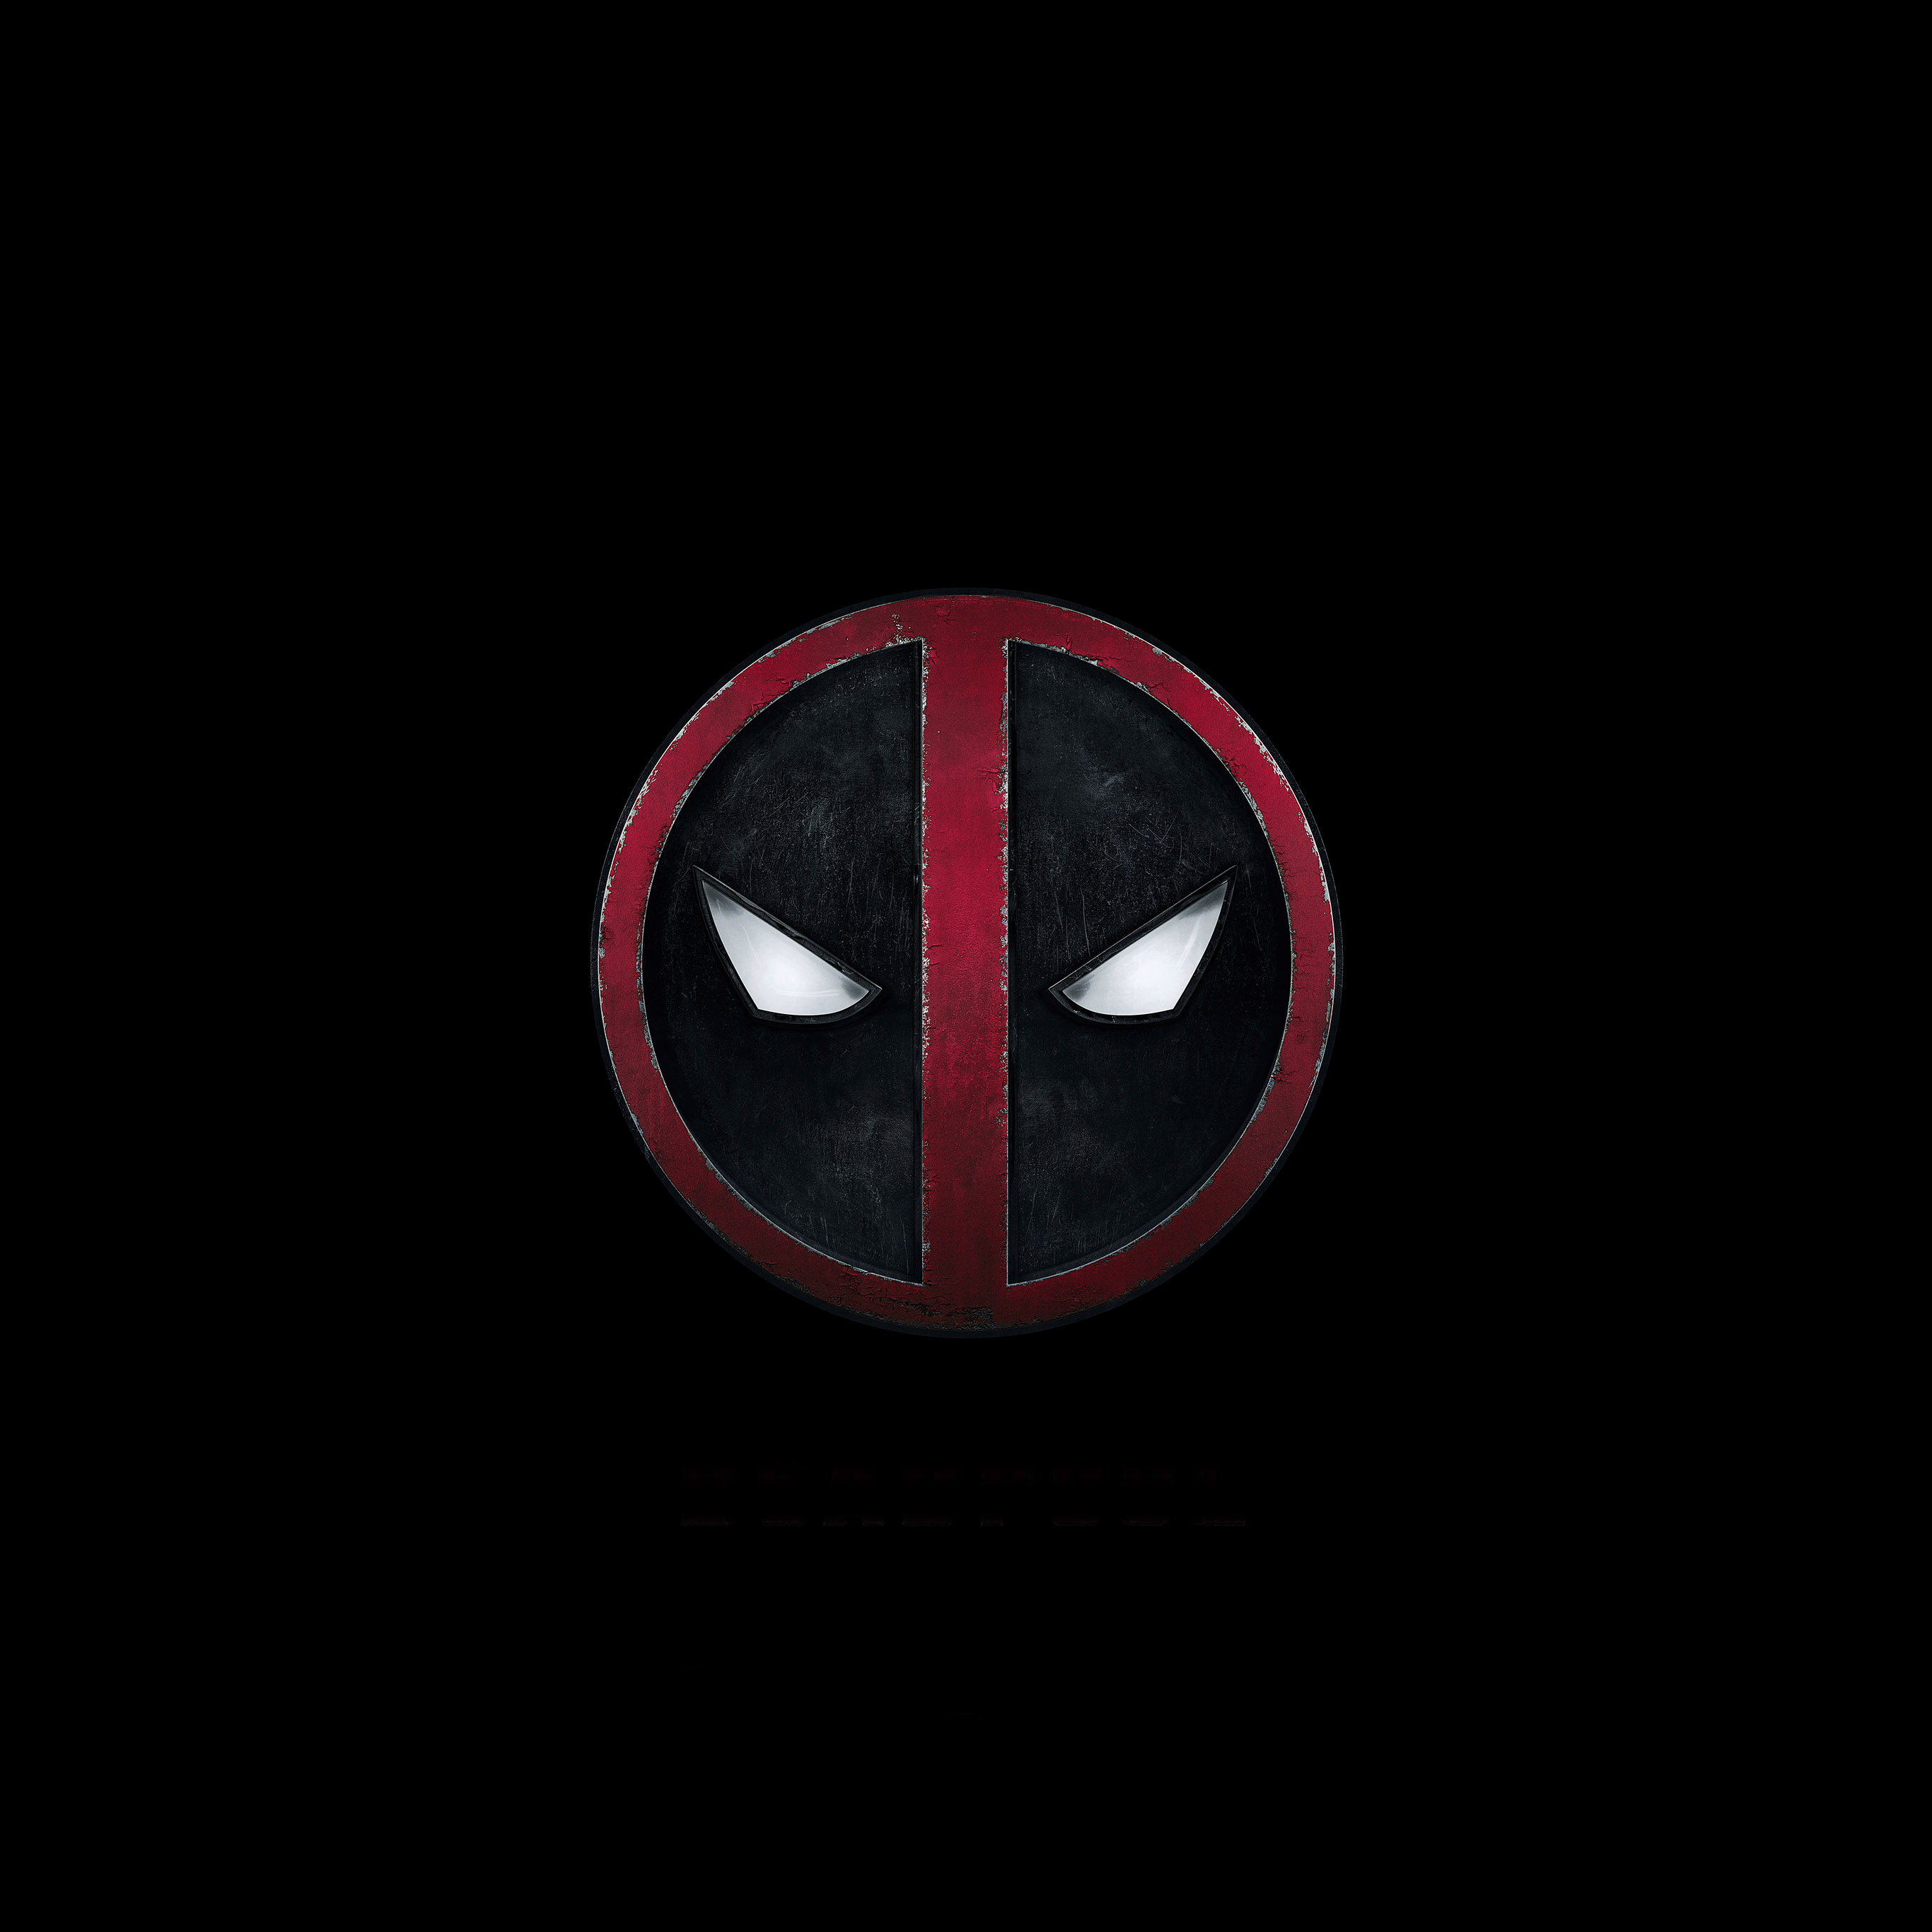 Galaxy S5 Fall Wallpaper Papers Co Android Wallpaper Ap50 Deadpool Art Logo Hero